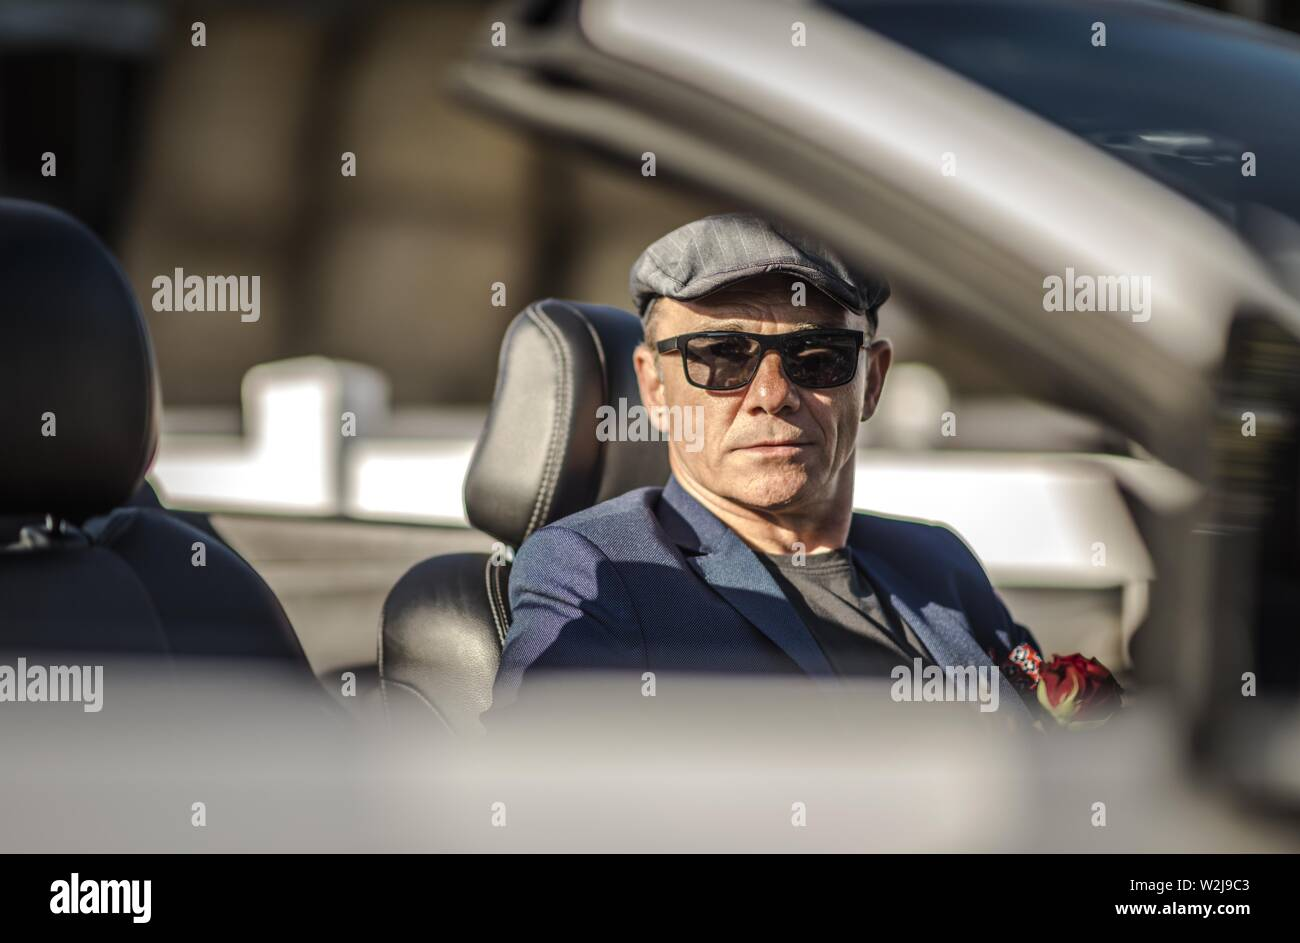 Attractive Retired Caucasian Men in Modern Cabriolet Car. Convertible Road Trip. Retirement Concept. - Stock Image